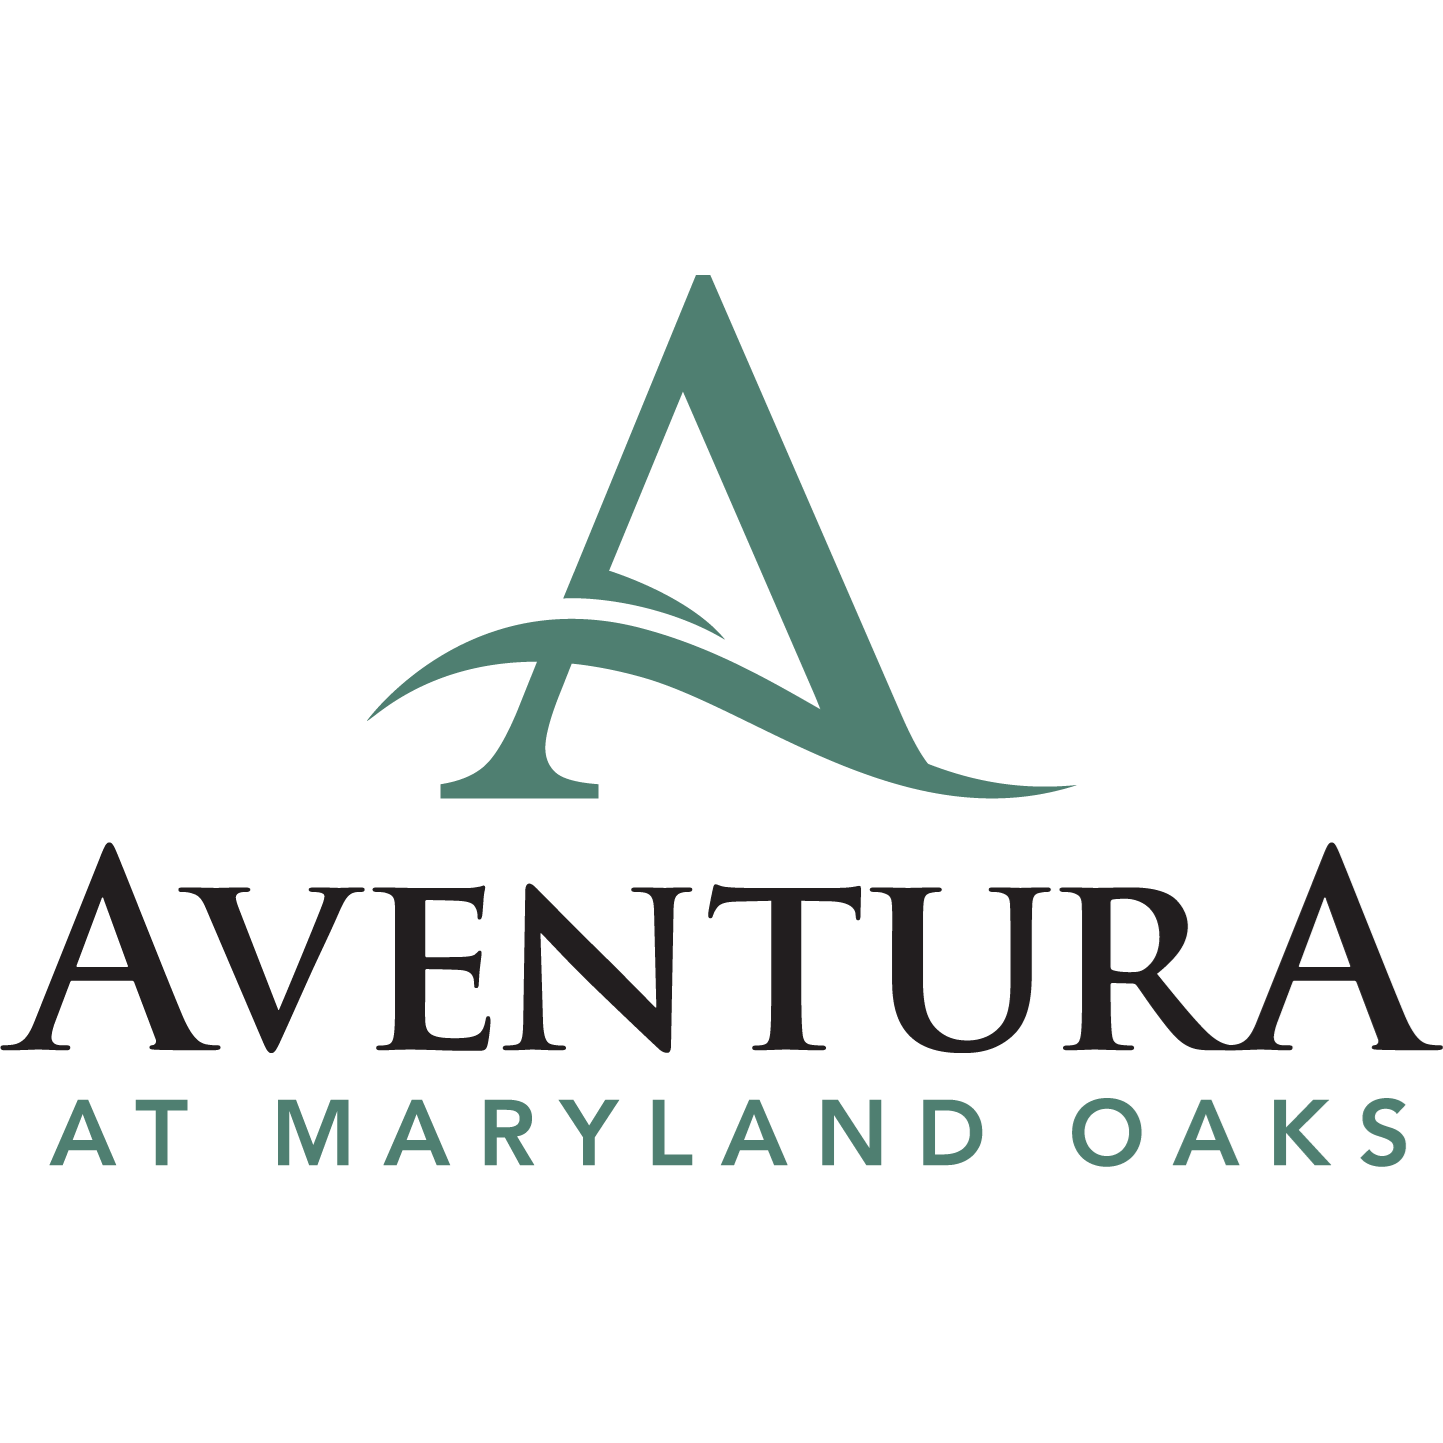 Aventura at Maryland Oaks